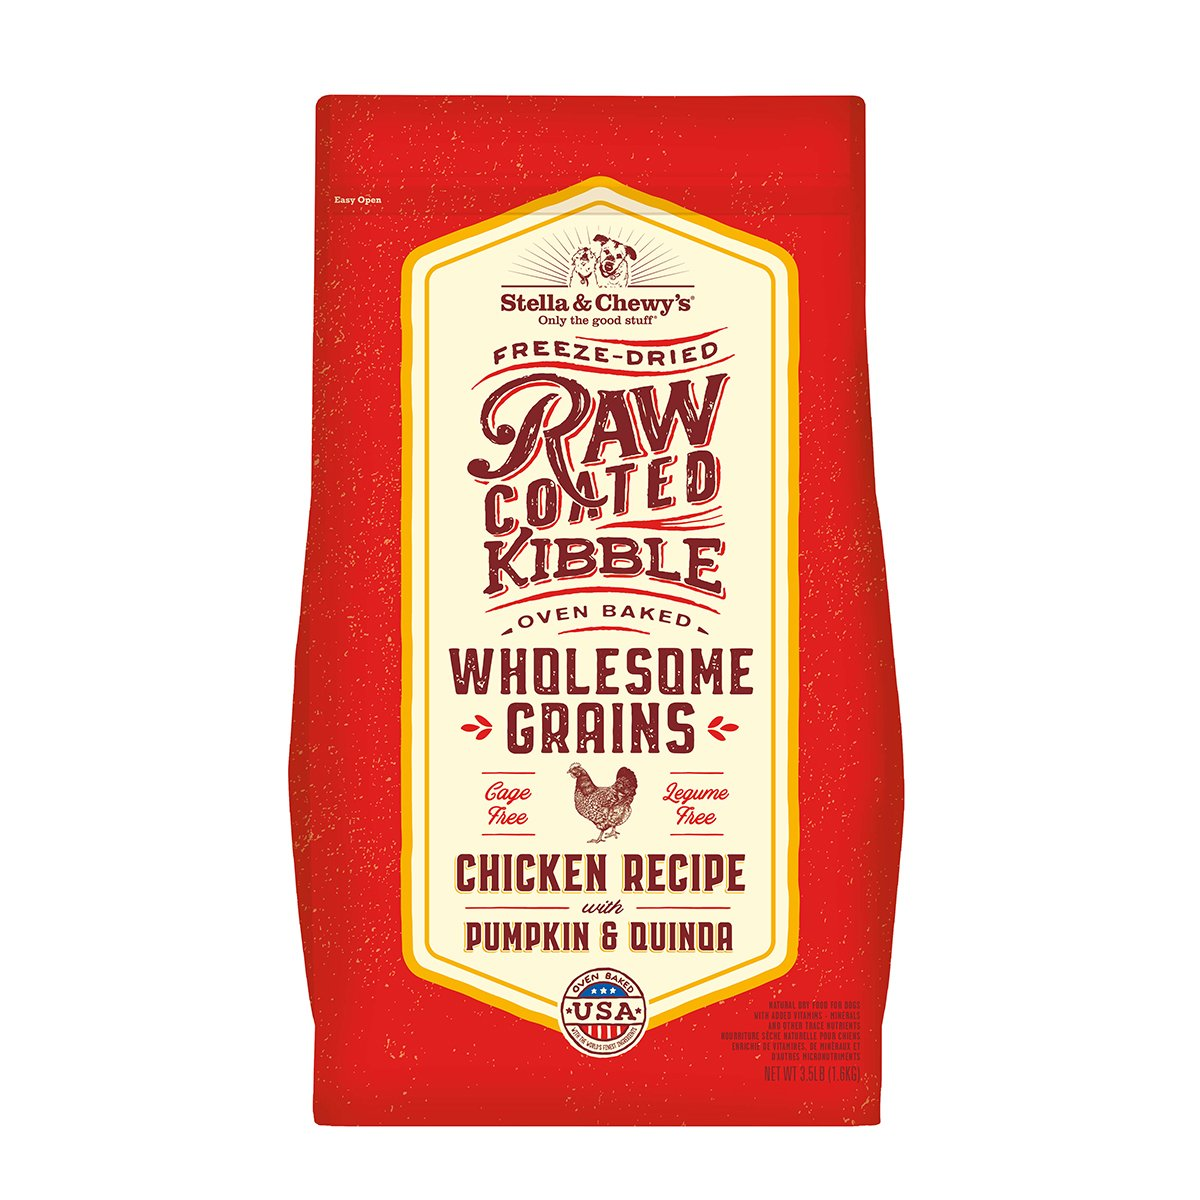 Stella & Chewy's Raw Coated Kibble with Grains Chicken Recipe with Pumpkin & Quinoa Dry Dog Food